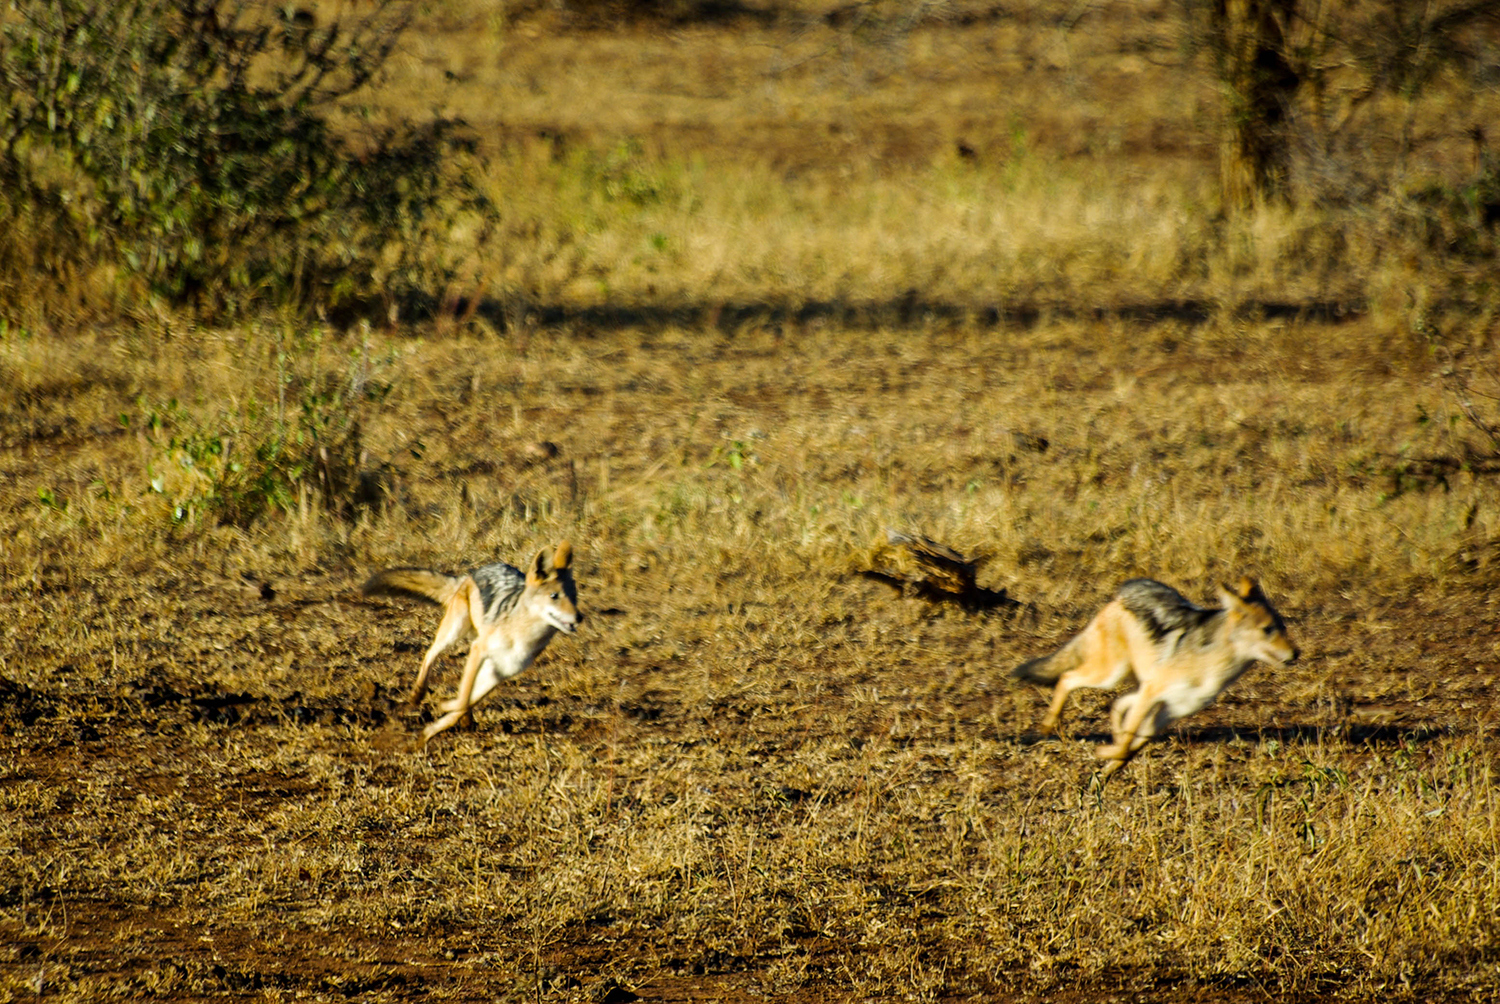 <p>Two jackals go from 'conversation' to chasing each other in an instant.</p>